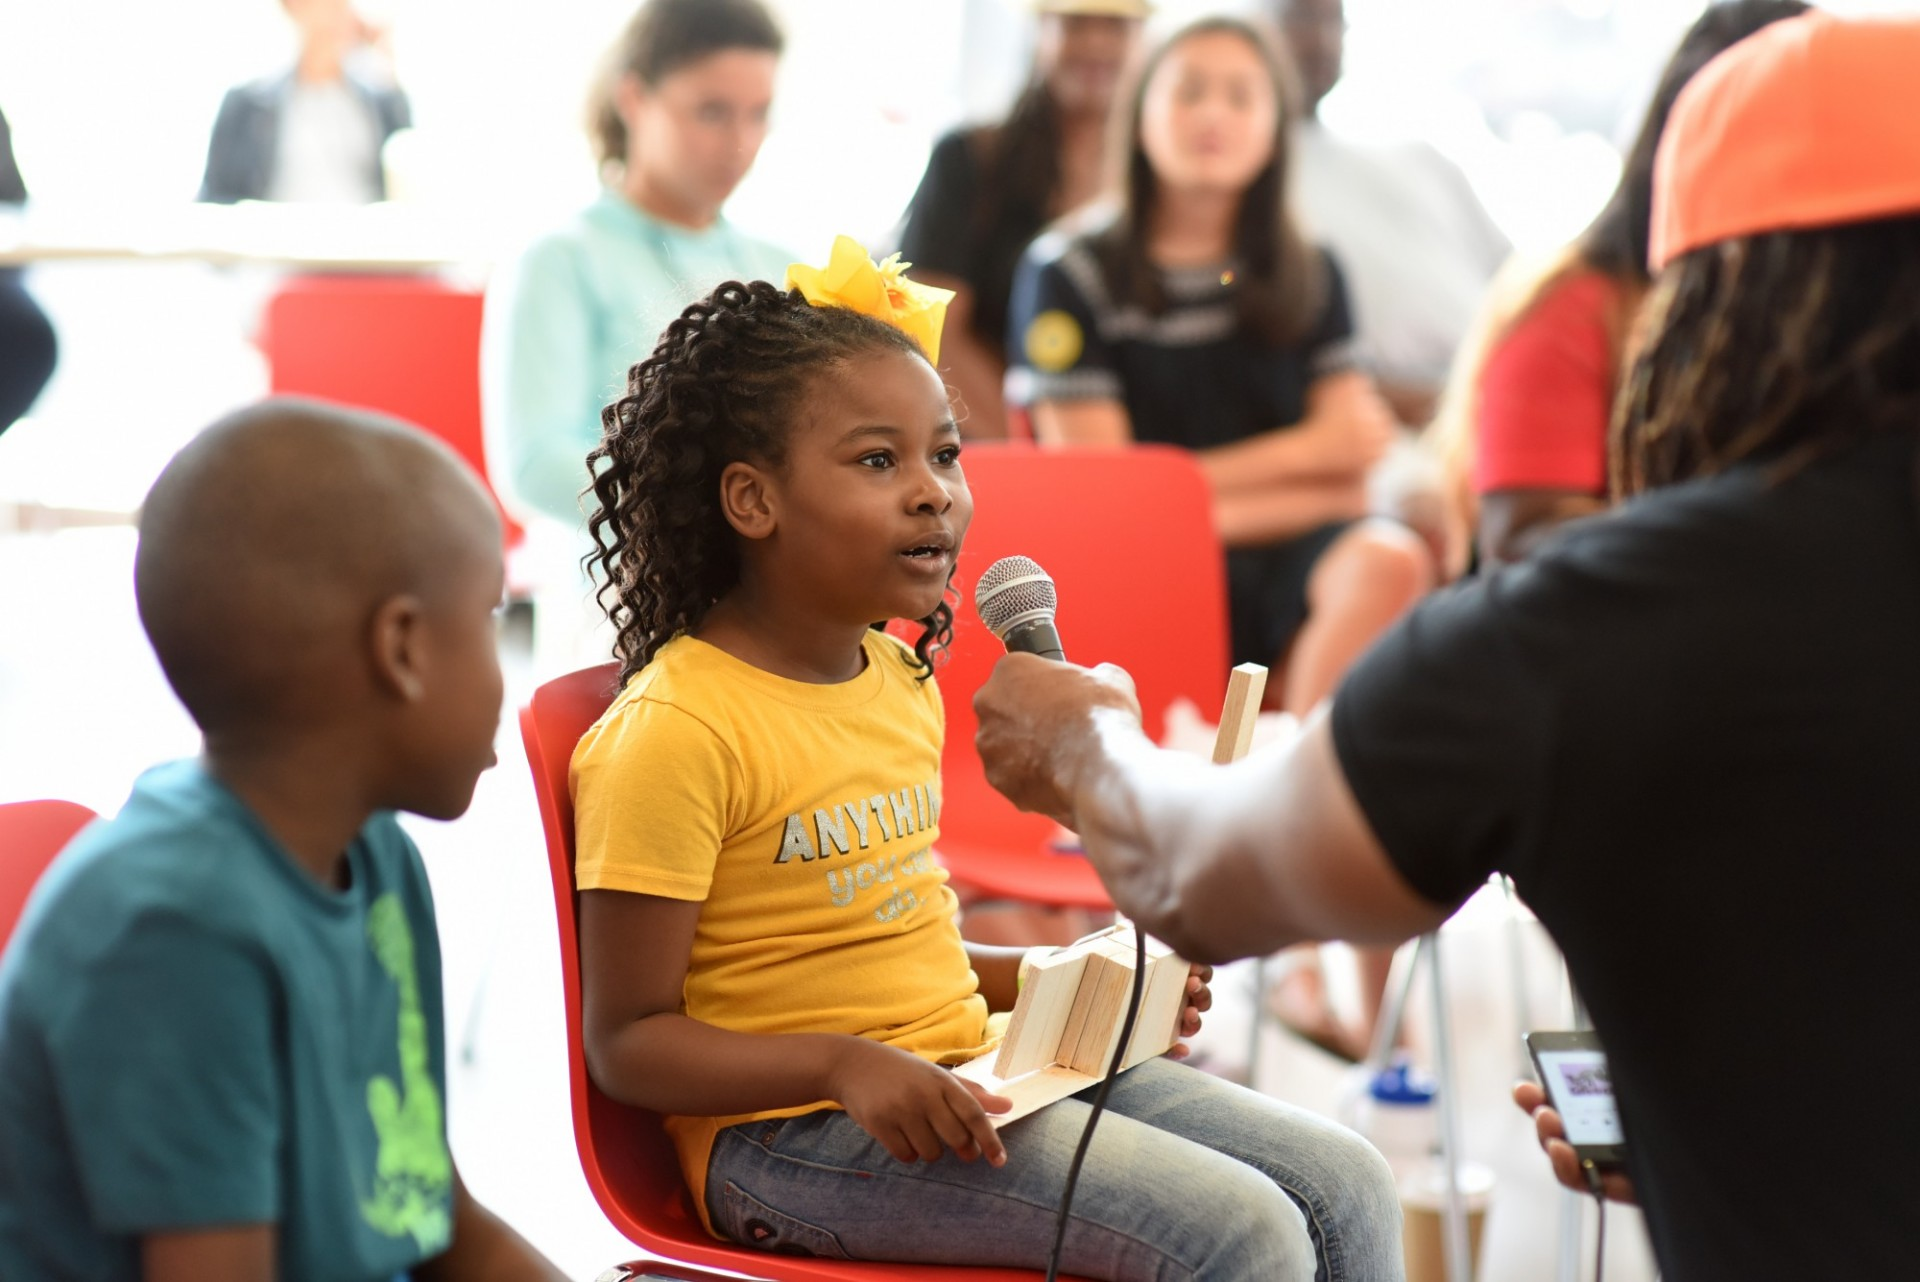 Instructor holds a microphone up to a young child in the audience during Community Day at The Forum